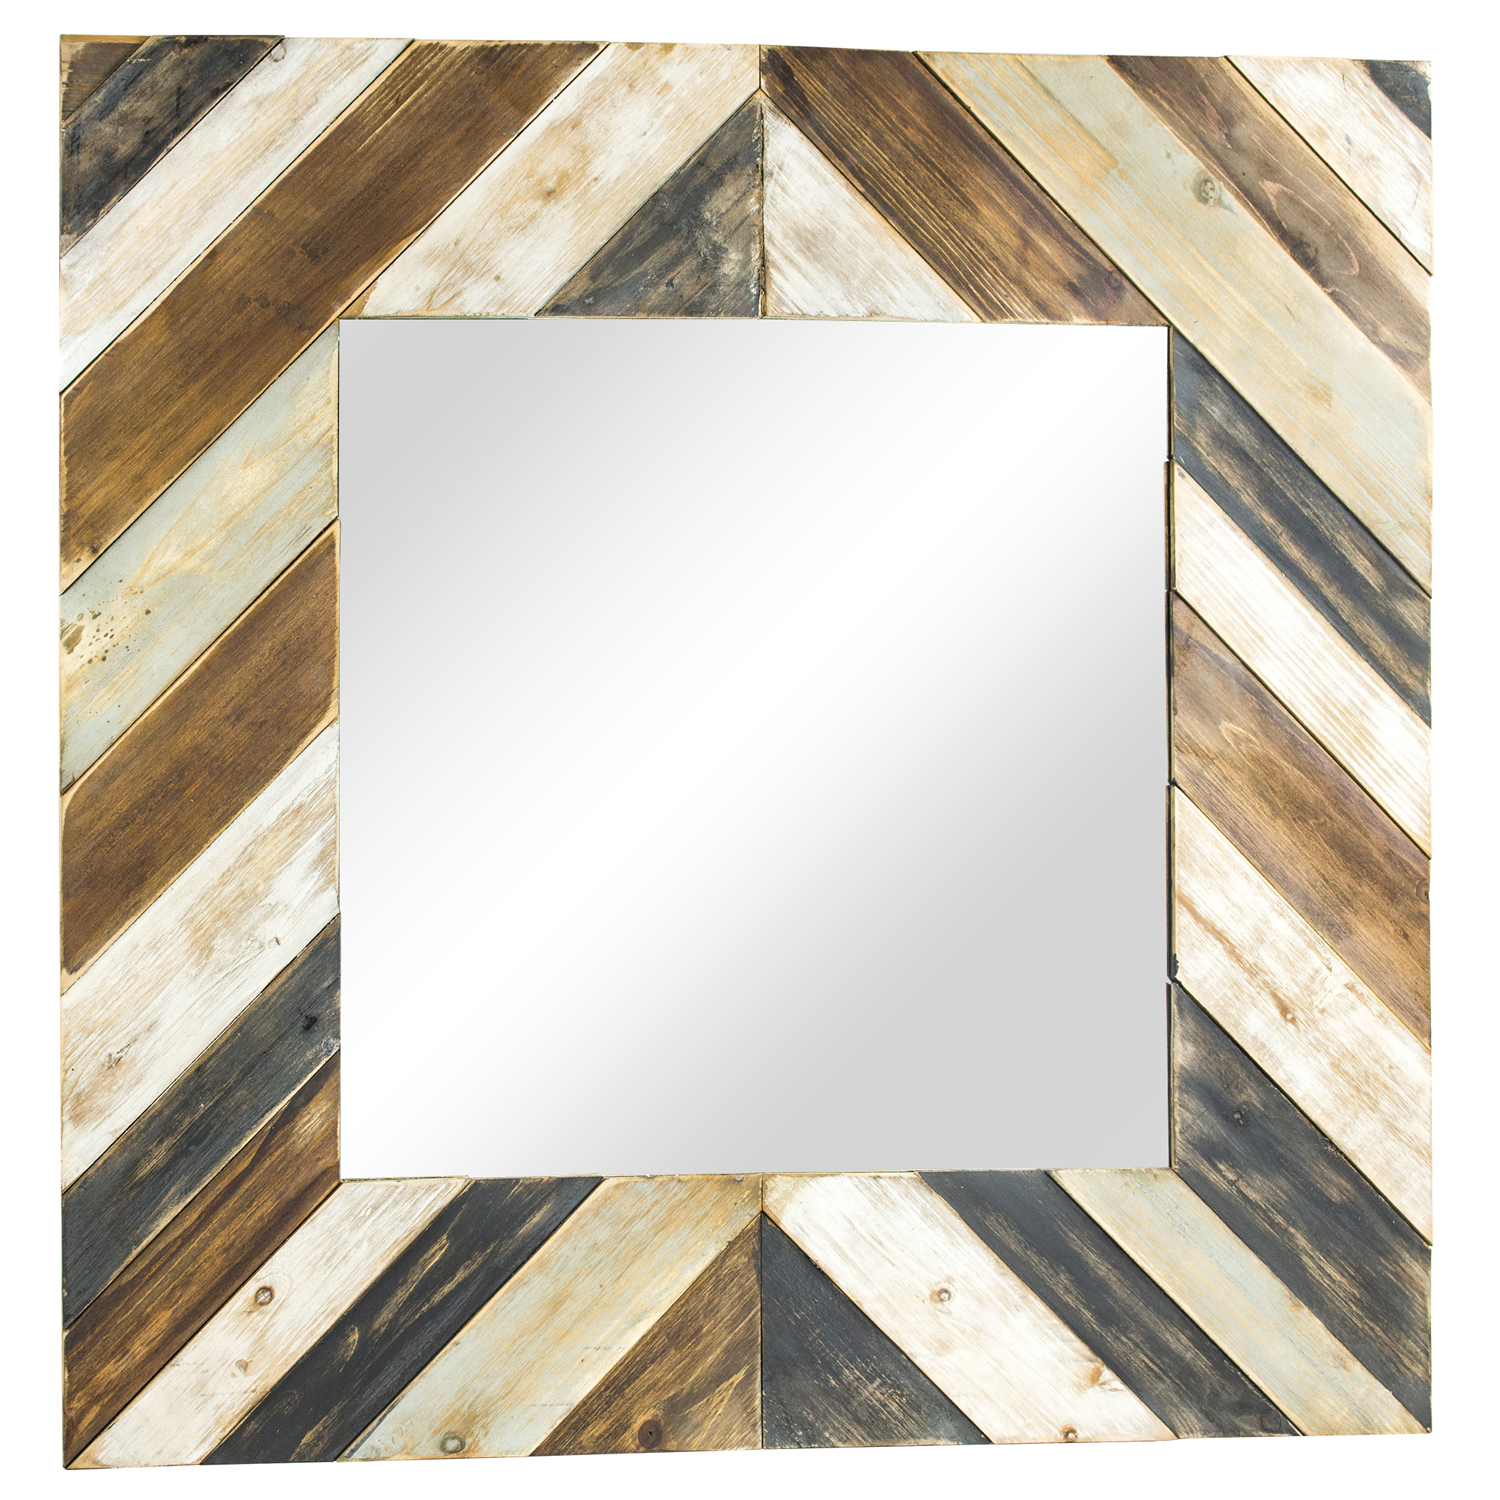 Farmhouse Rustic Planked Wood Square Mirror